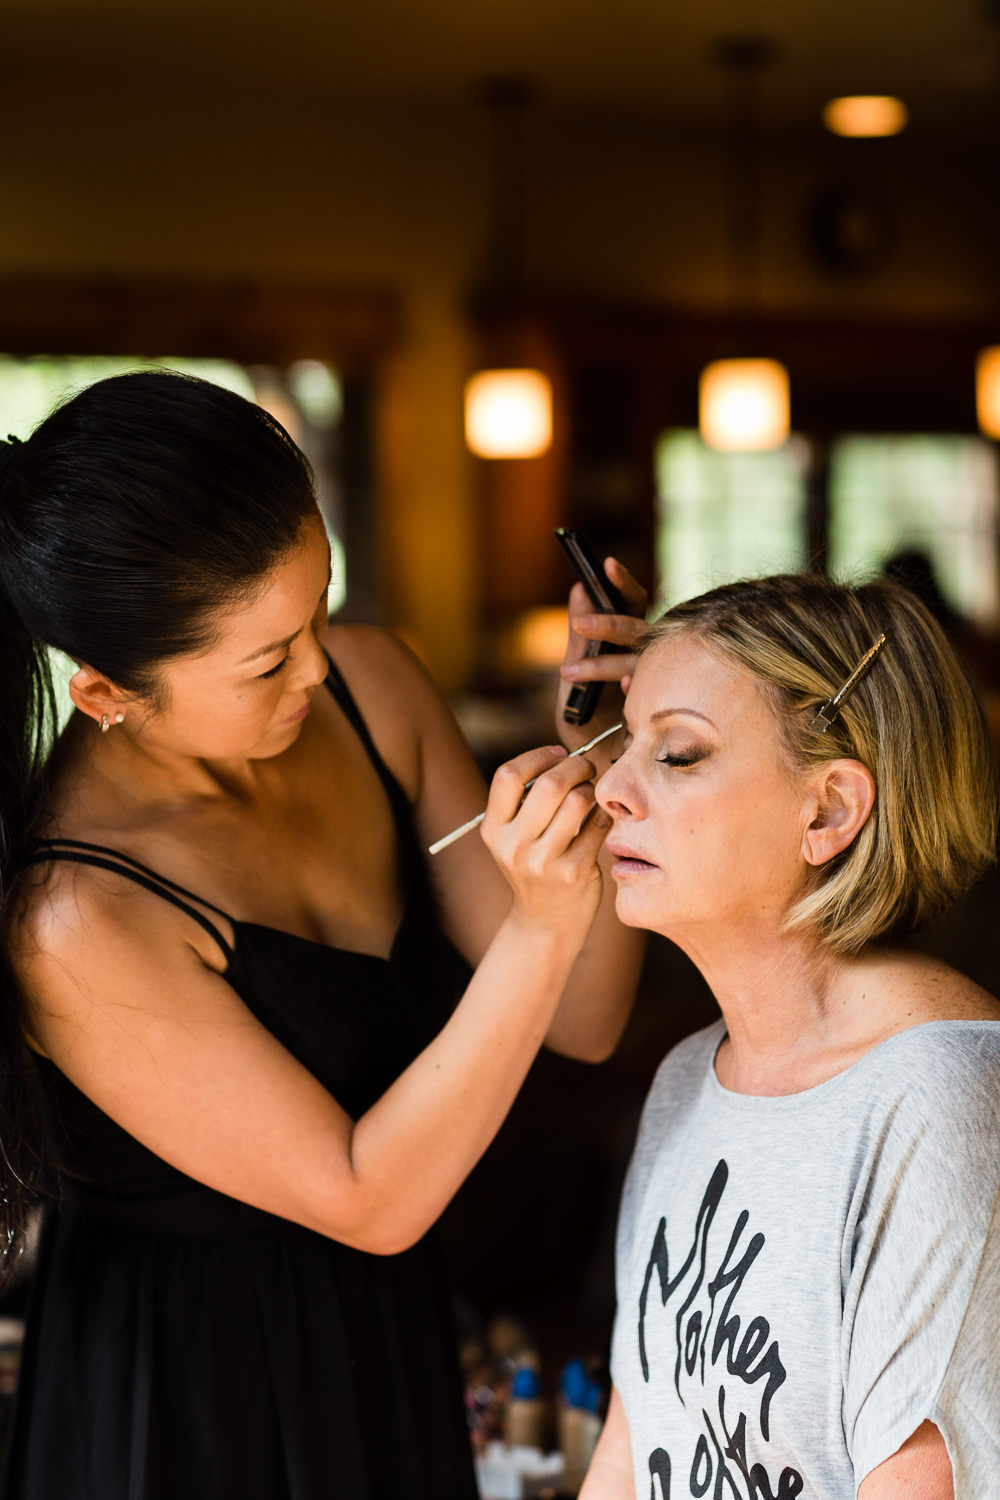 bozeman-hart-ranch-wedding-brides-mother-in-makeup.jpg